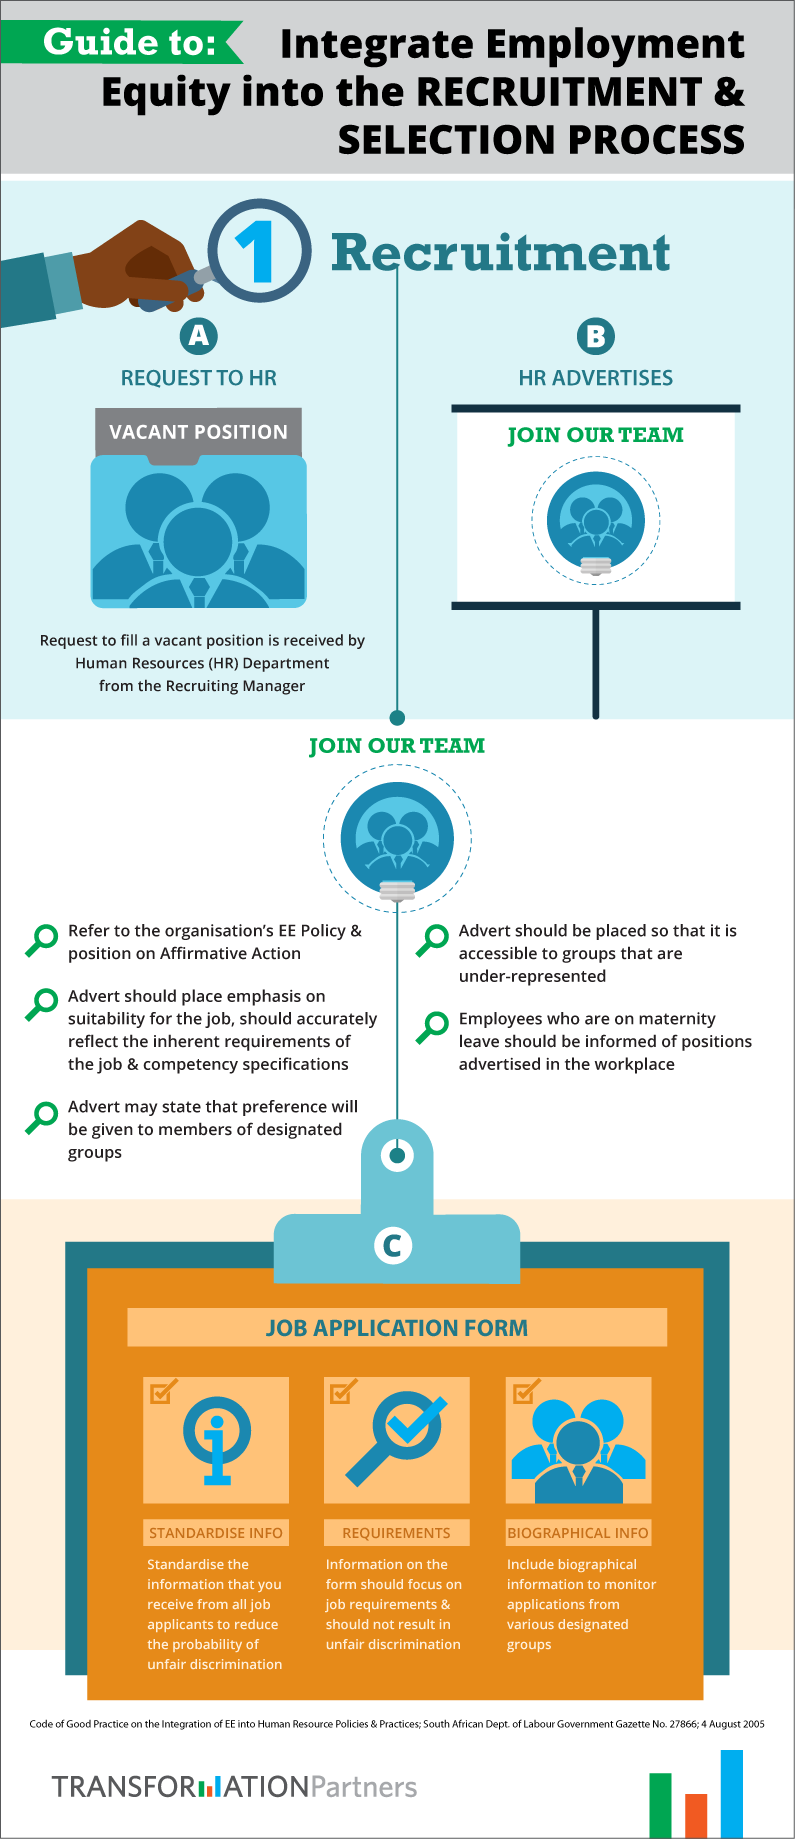 Infographic shows a typical Recruitment process and the suggested employment equity best practices to integrate into this process.